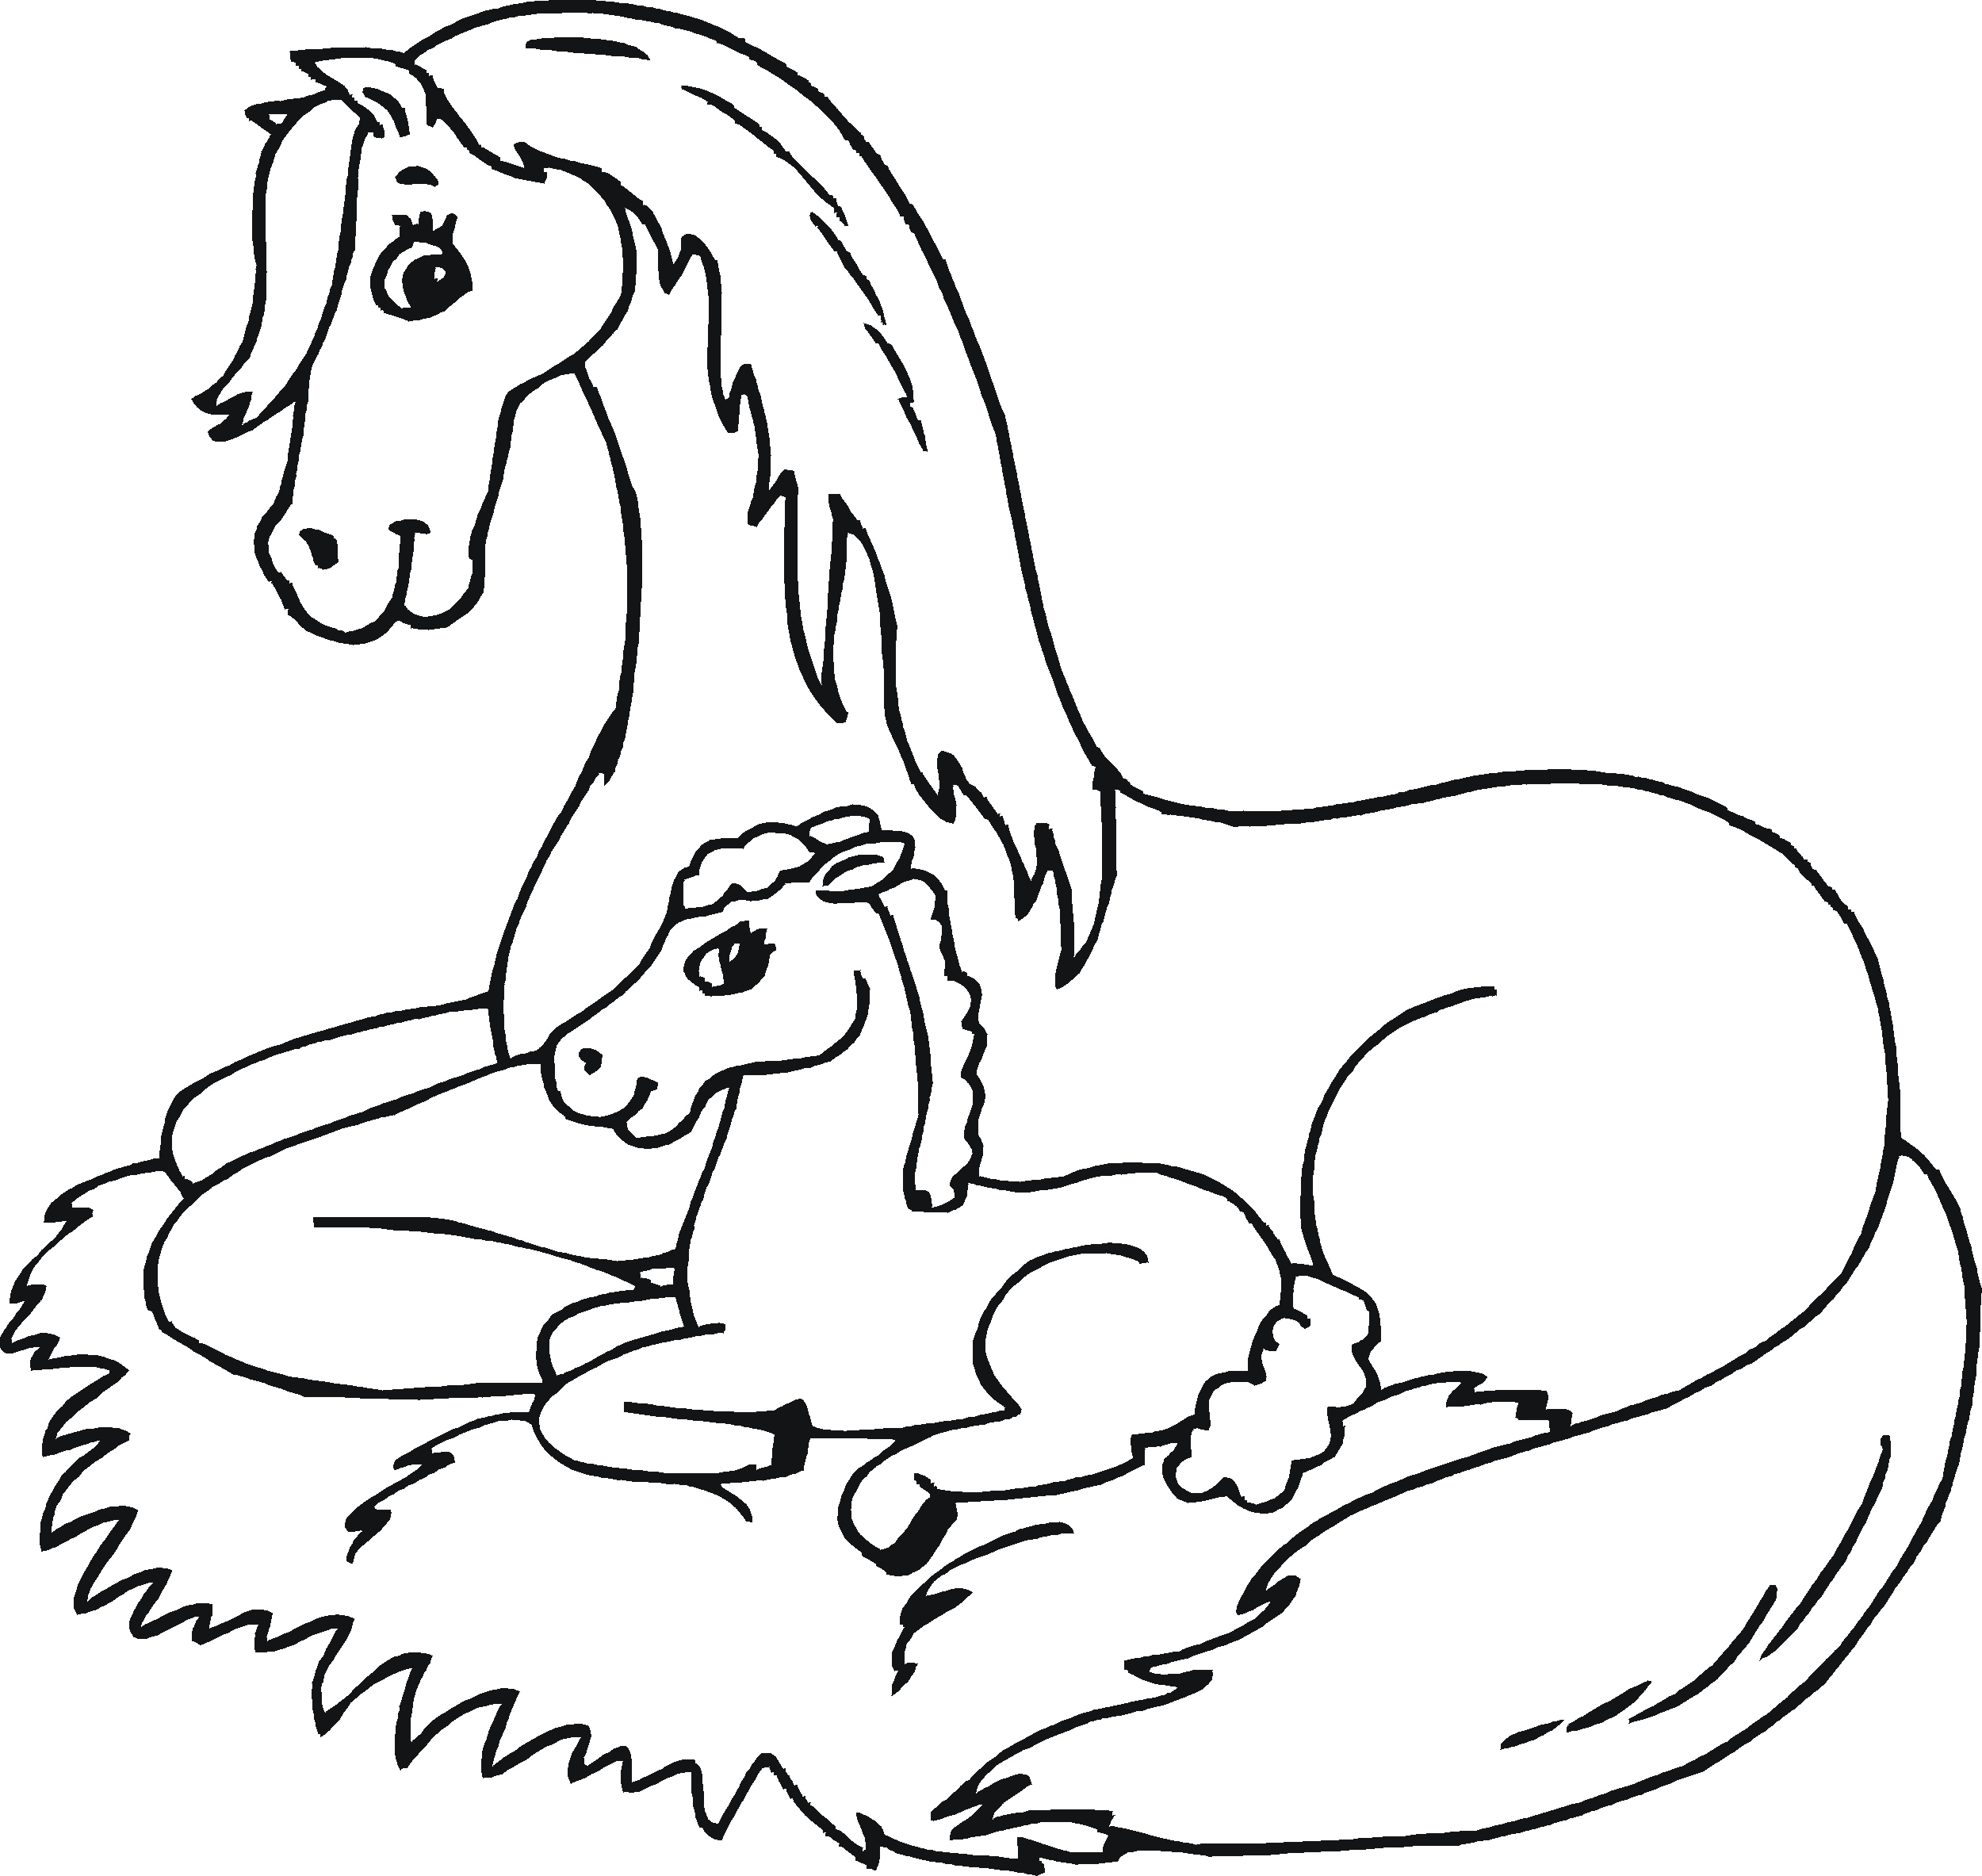 pictures of horses to colour in 30 best horse coloring pages ideas weneedfun colour horses in pictures to of